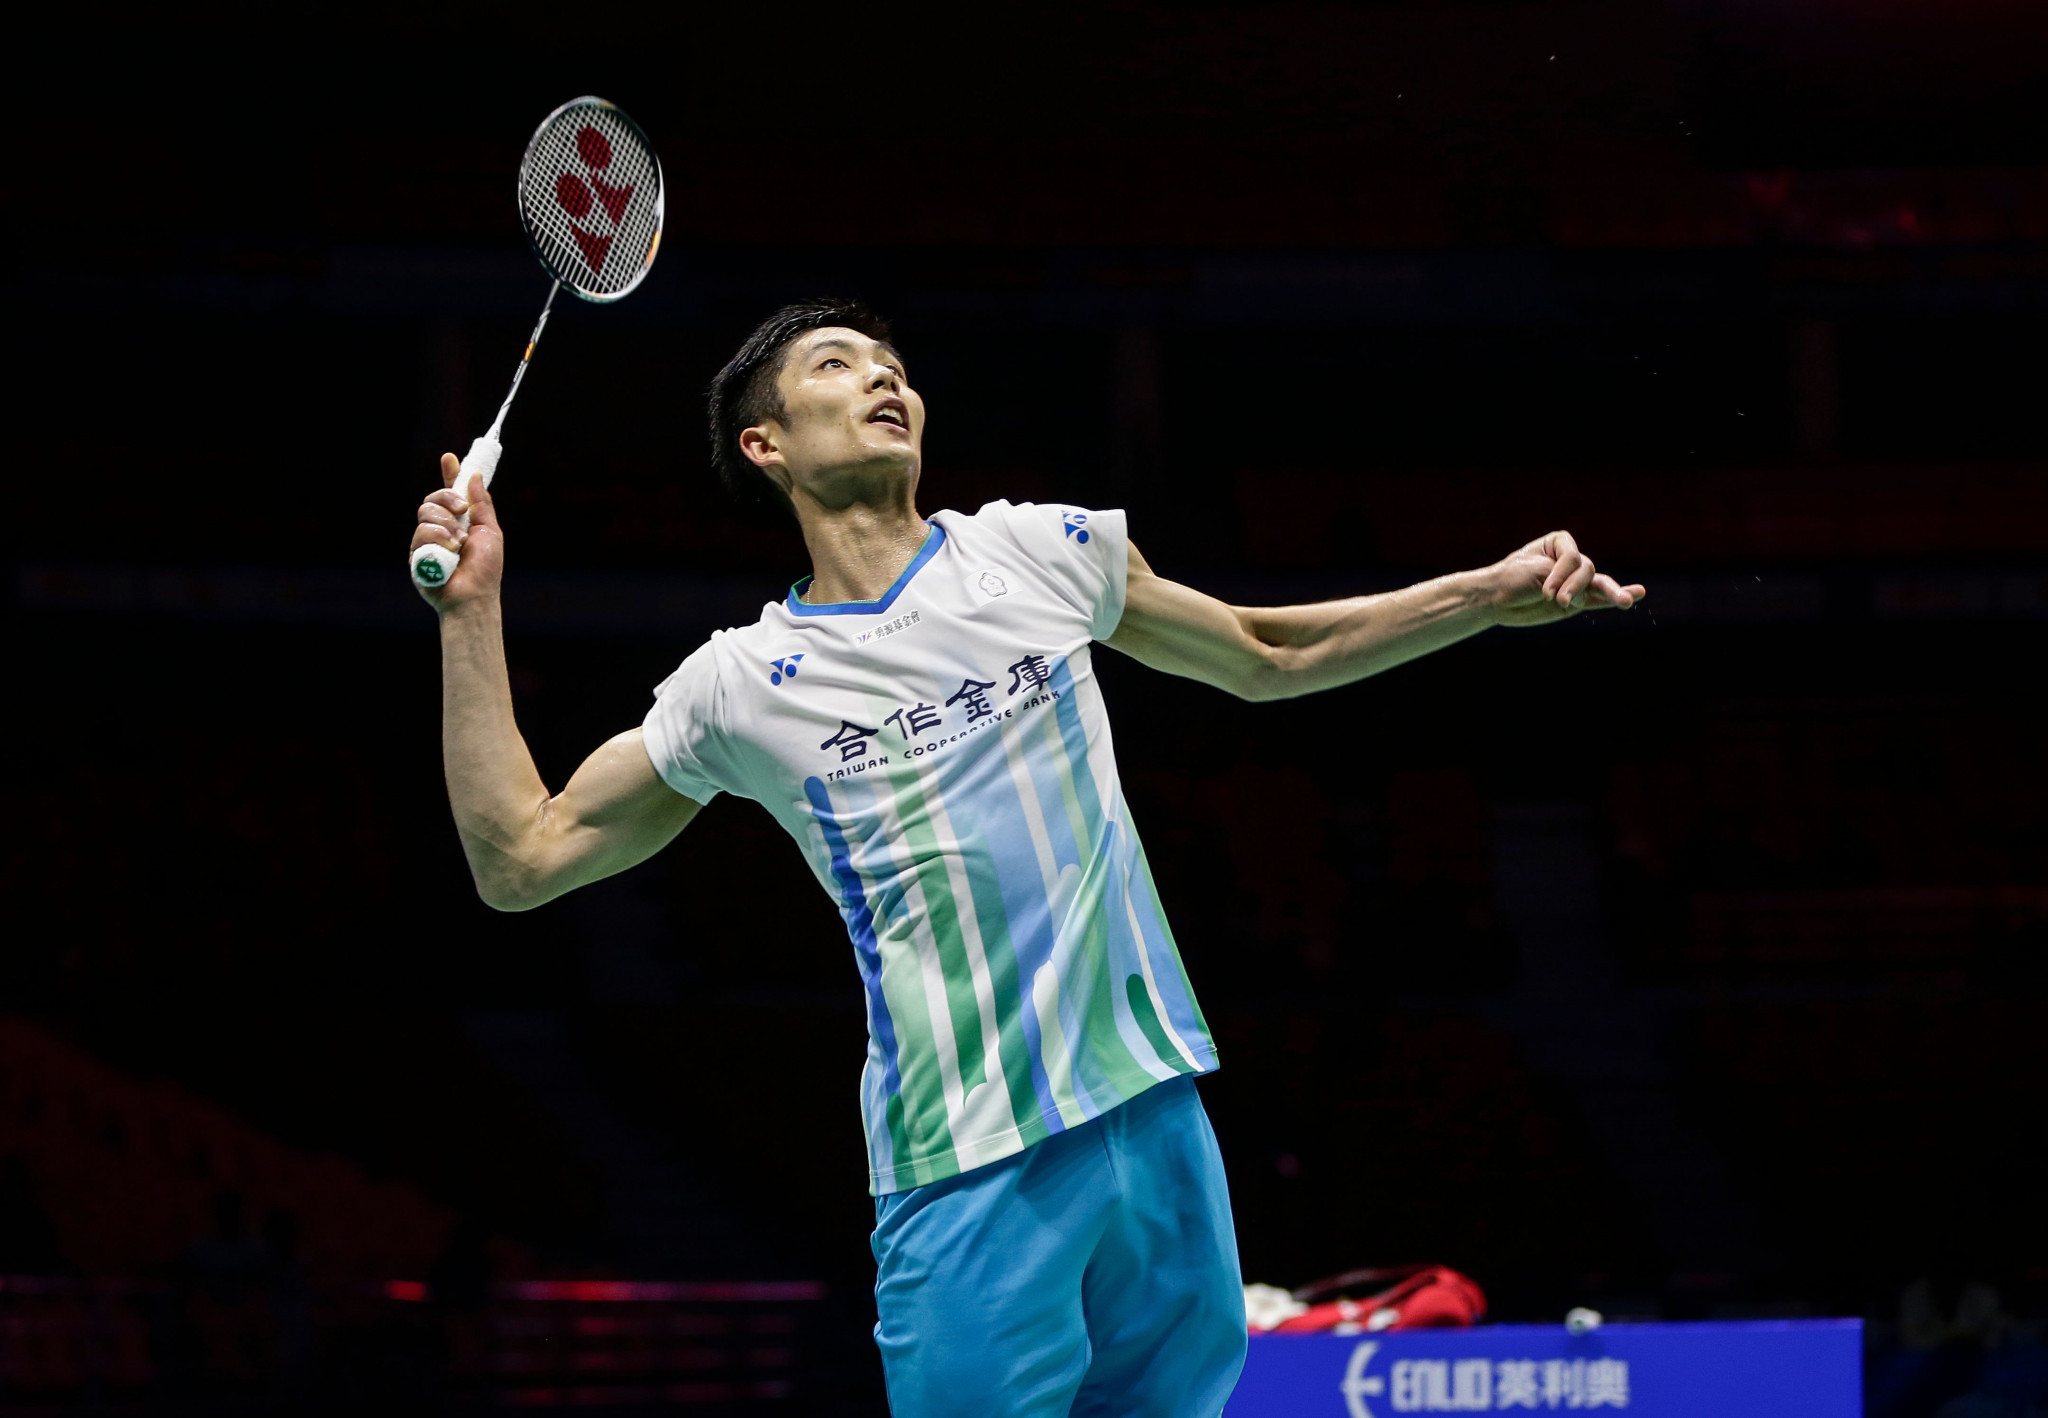 Chou Tien Chen of Chinese Taipei, world ranked three, is men's singles top seed at the BWF Australian Open that starts i Sydney tomorrow ©Getty Images